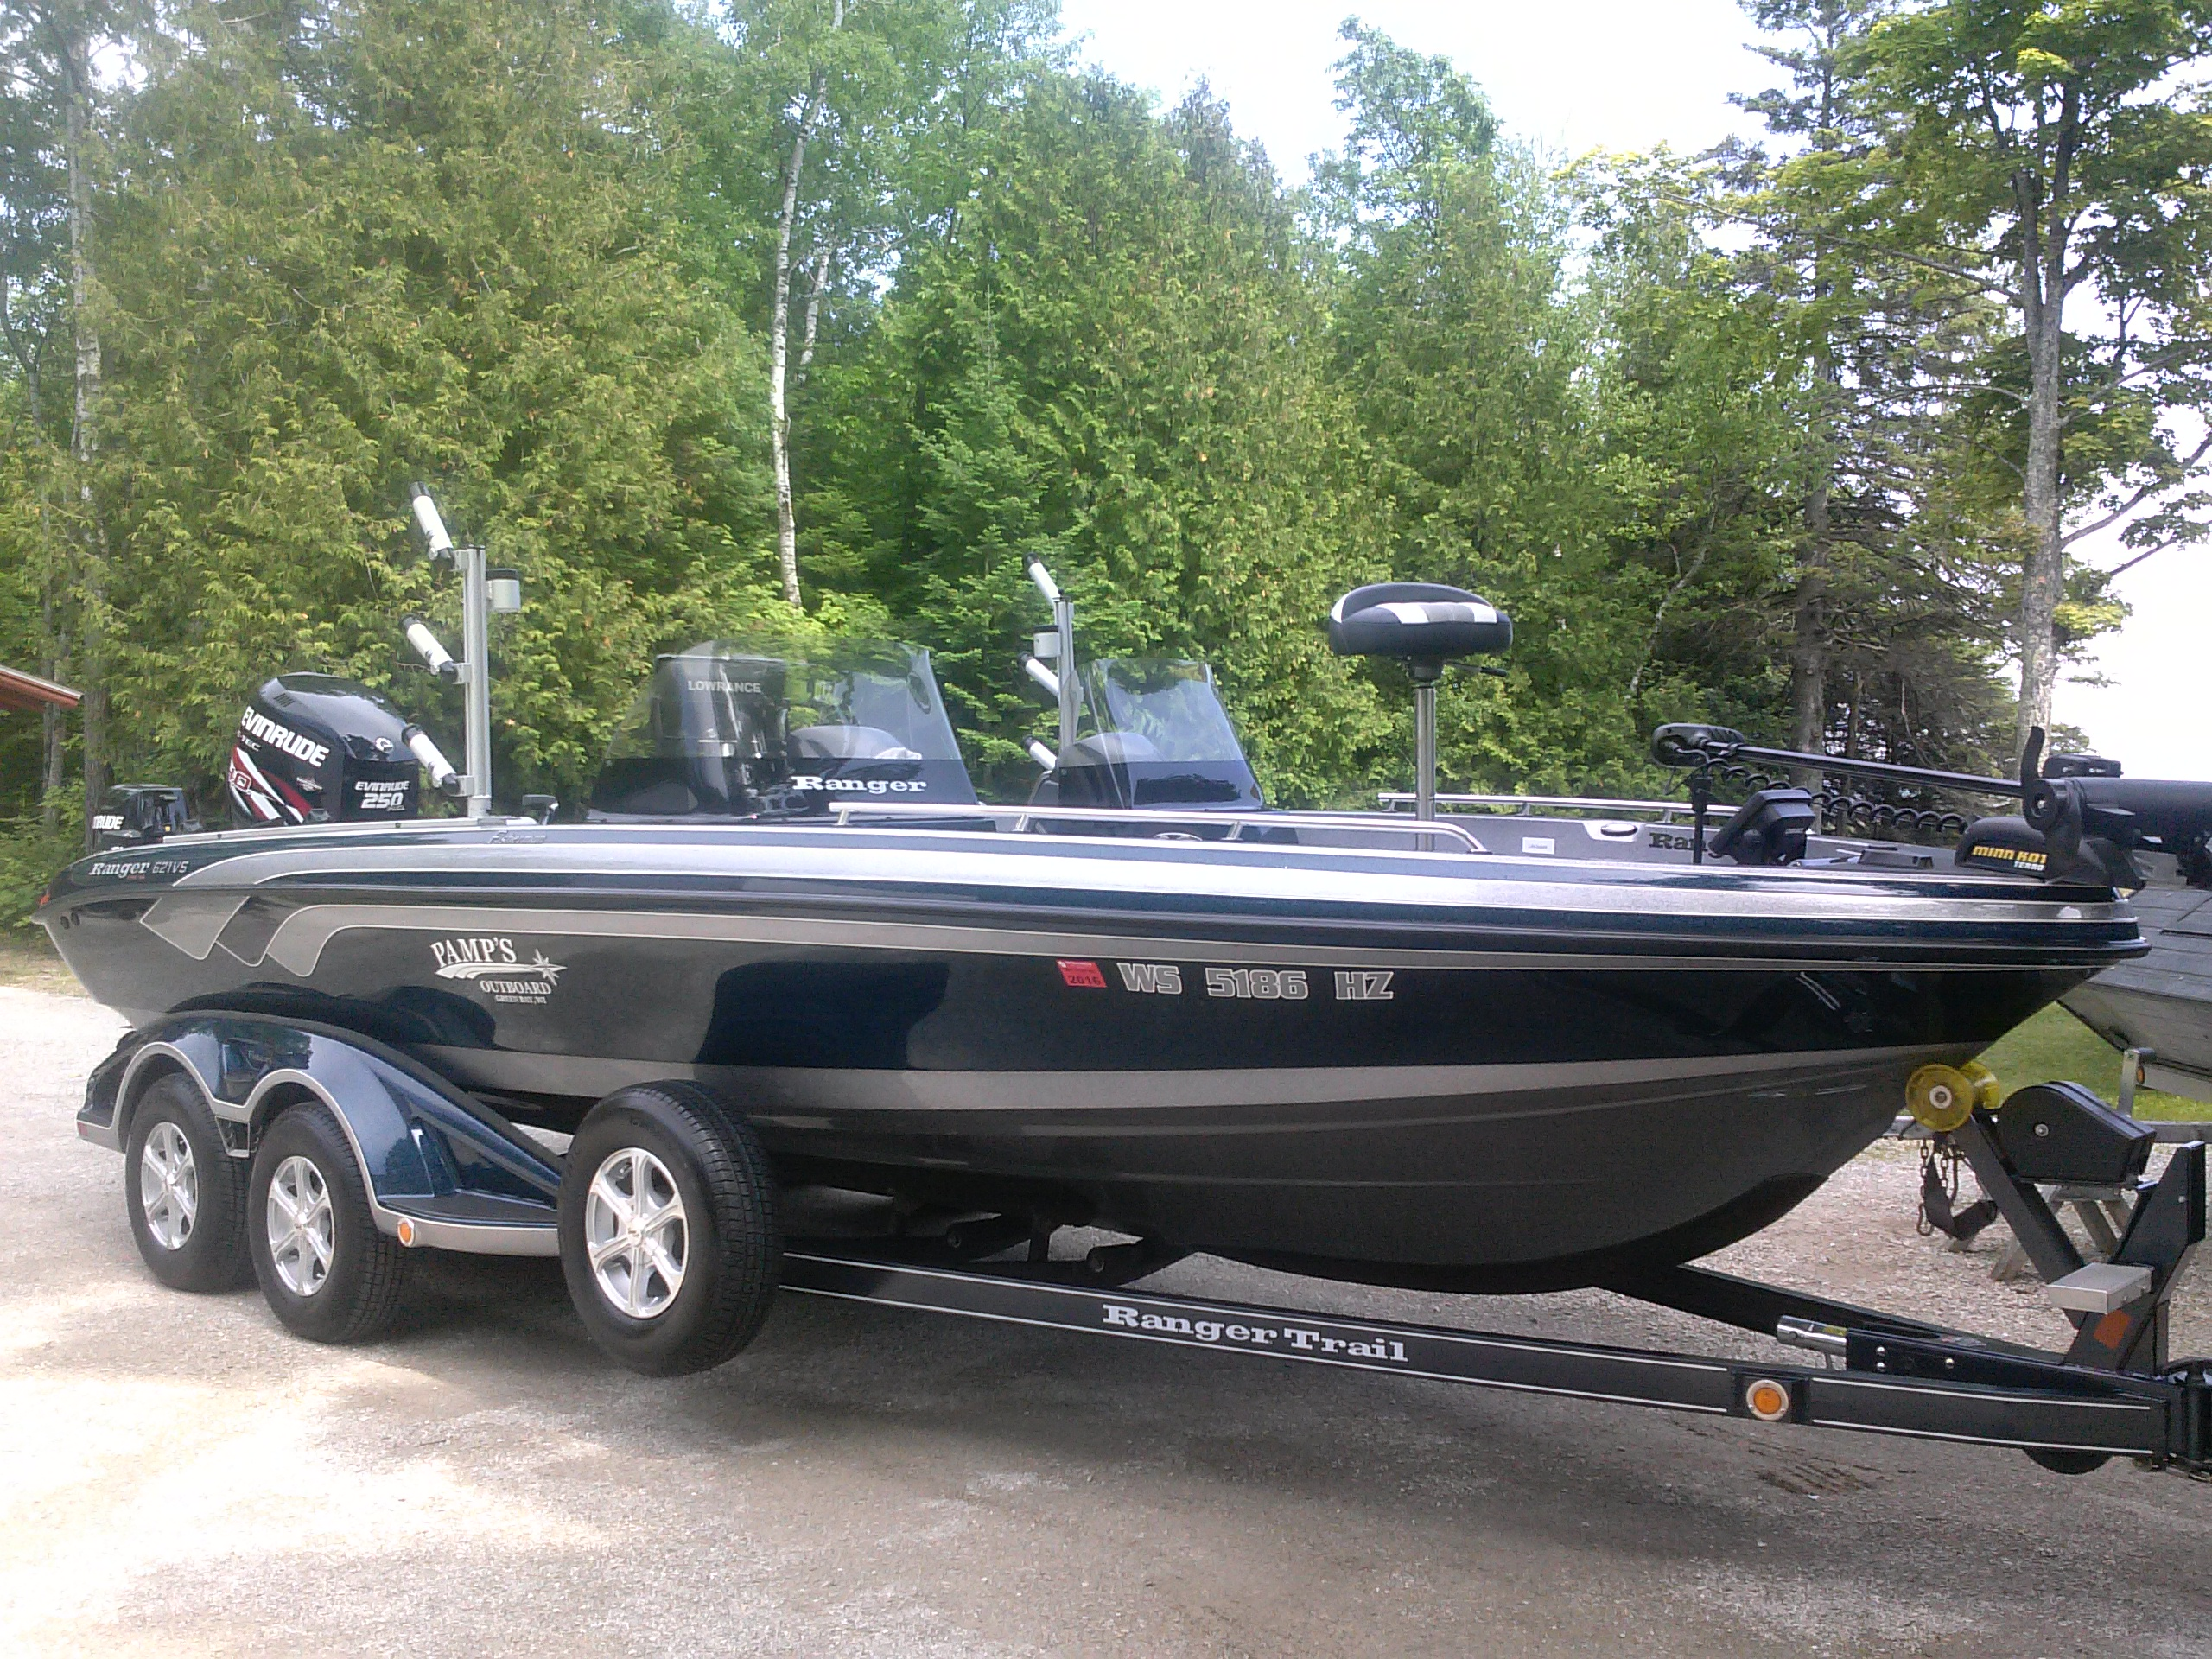 My 2013 Ranger 621 With Evinrude E-Tec Is For Sale At $58,000 00